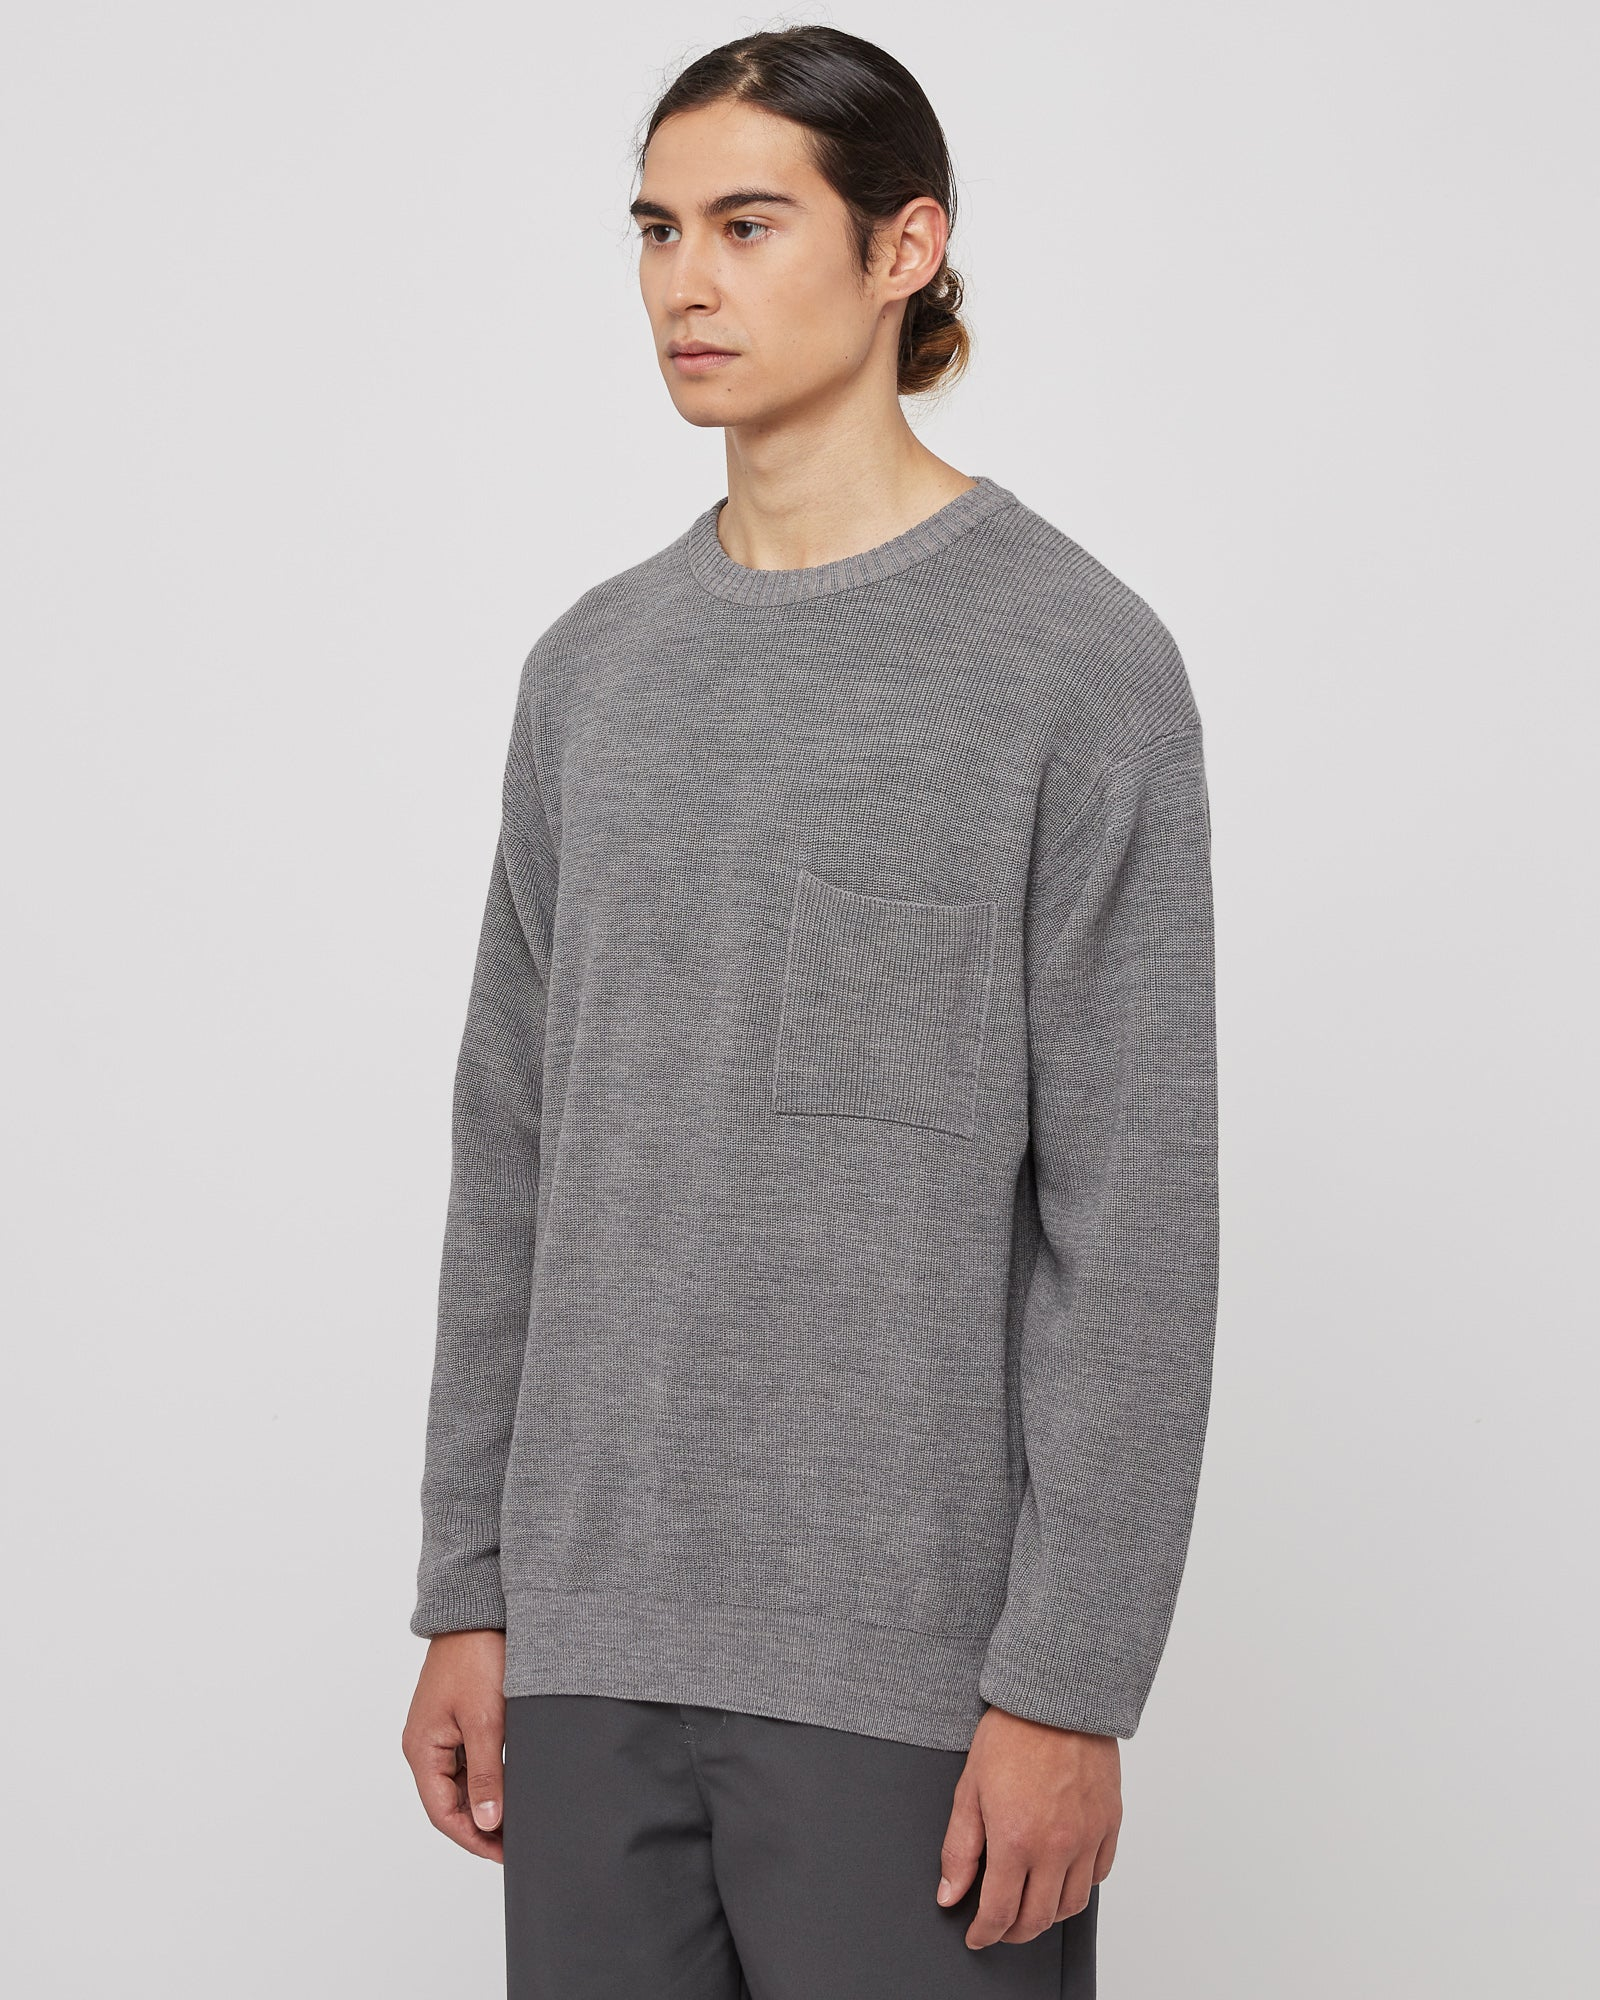 C/W Pocket Knit in Gray